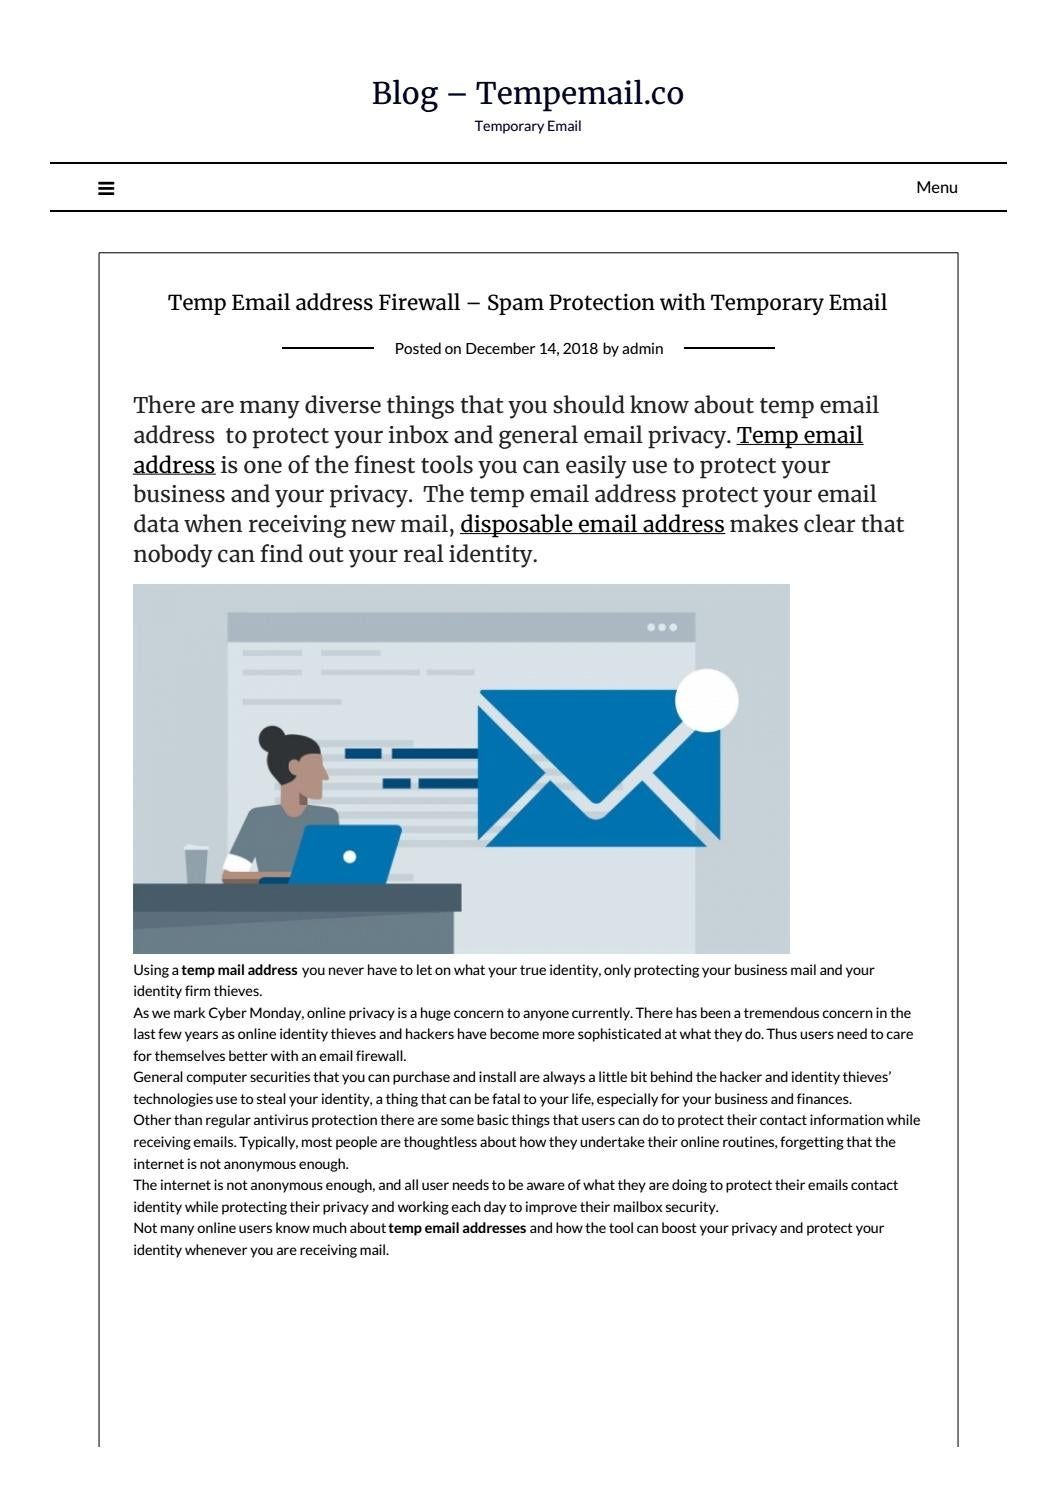 Temp Email address Firewall – Spam Protection with Temporary